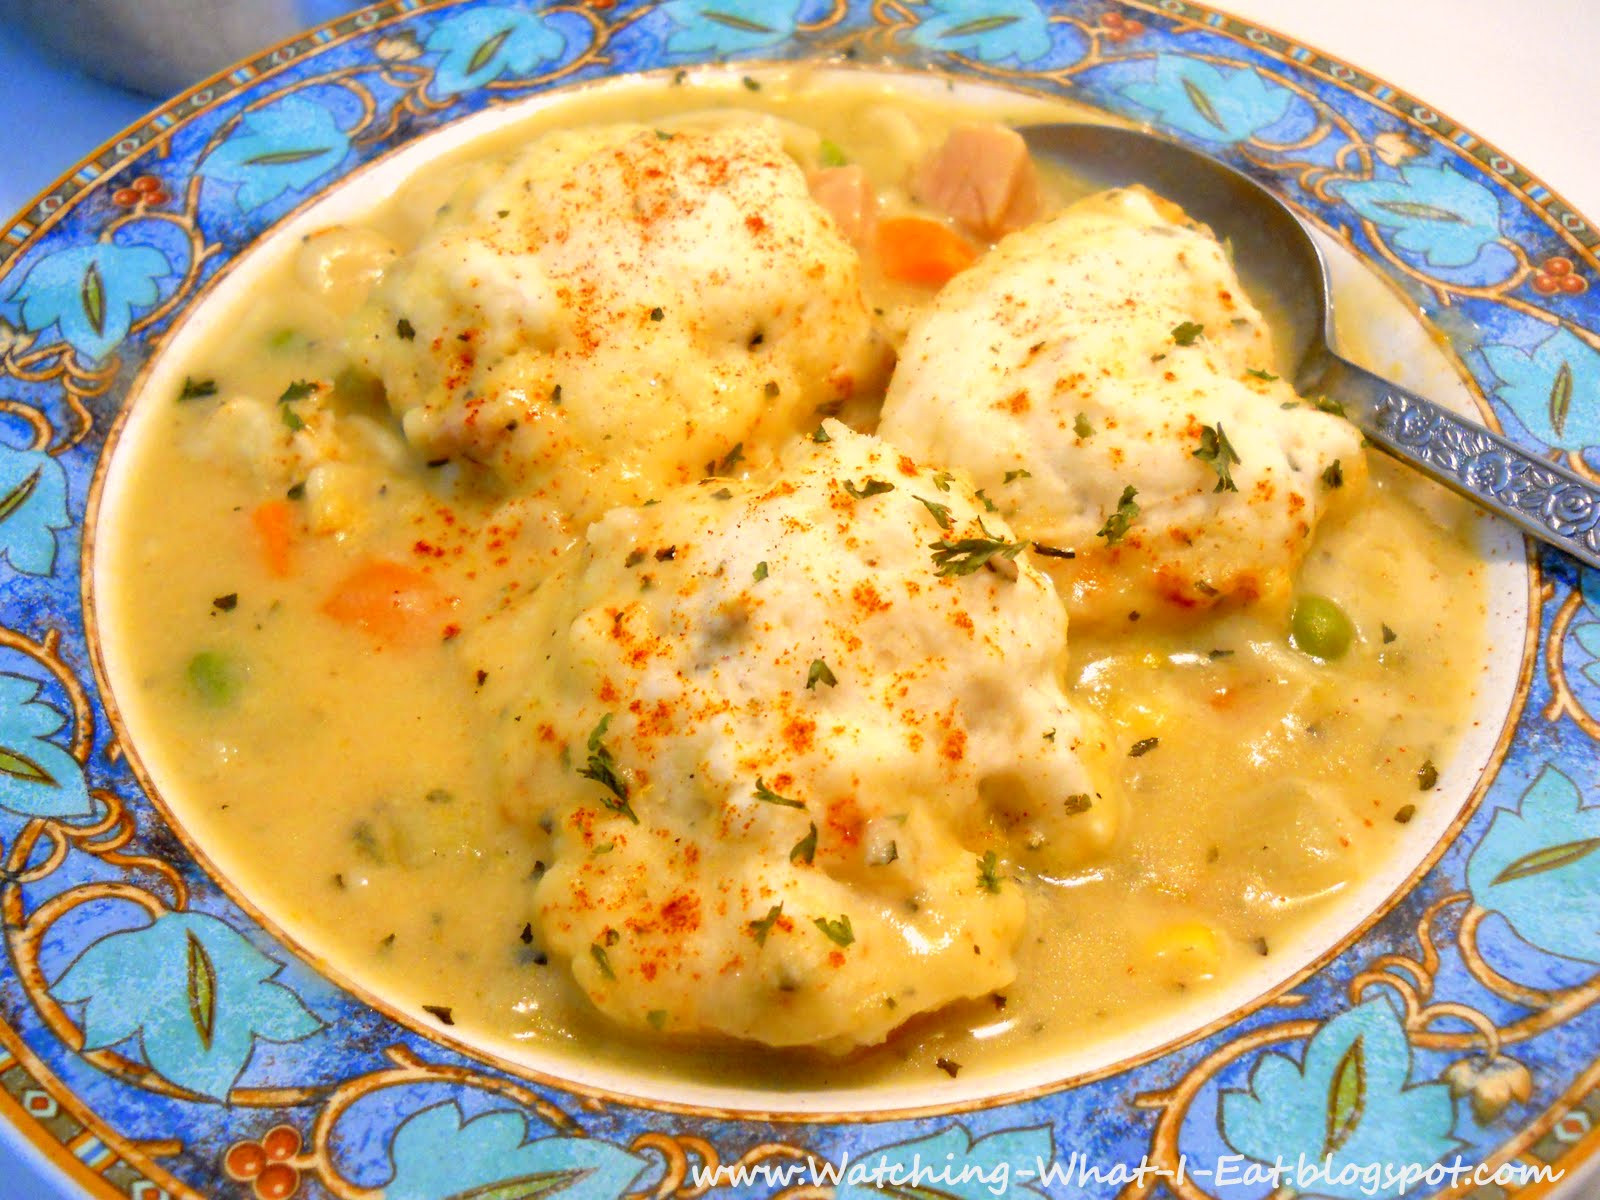 Quick Chicken And Dumplings  Watching What I Eat Easy Chicken and Dumplings